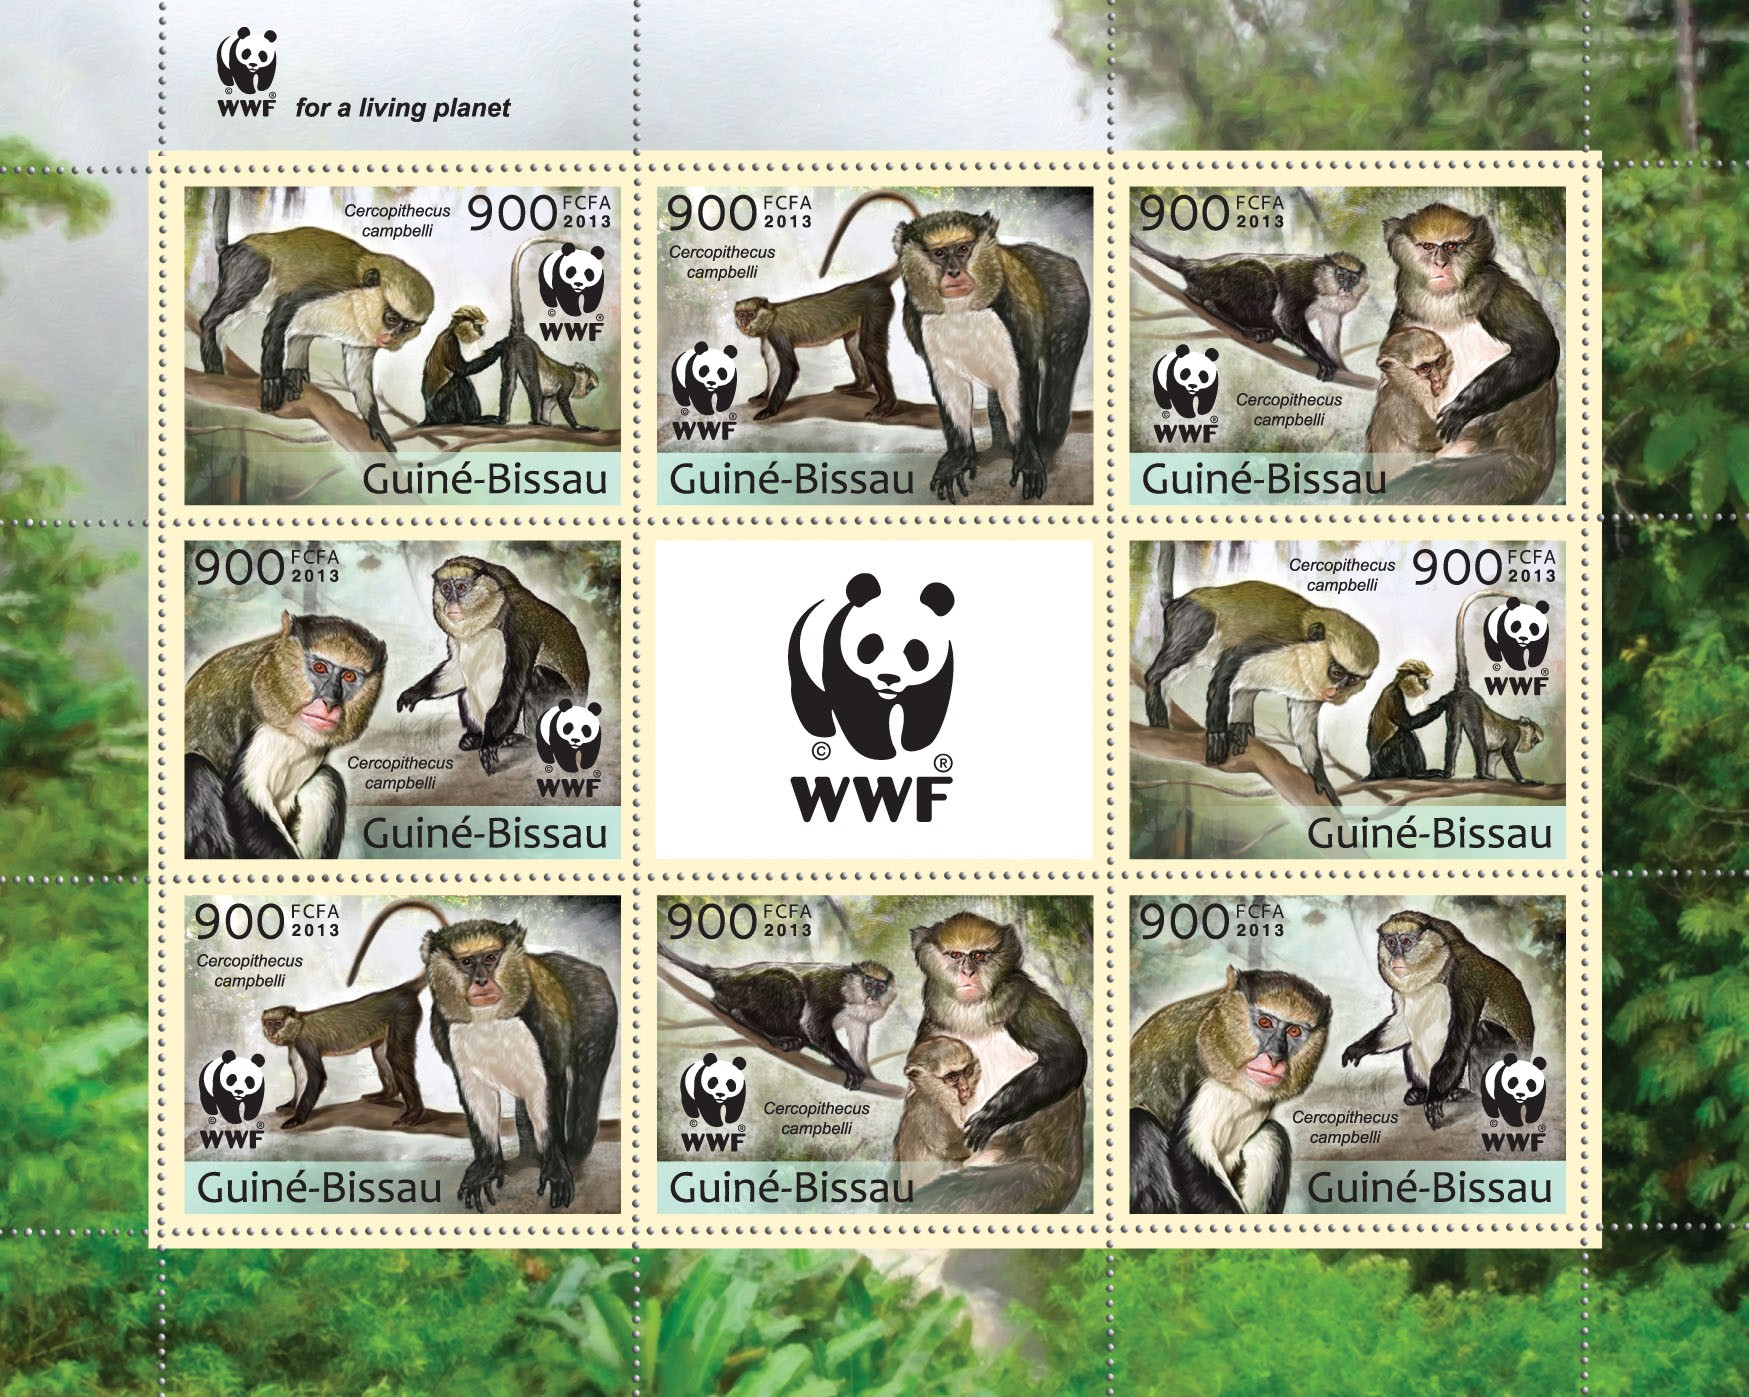 WWF - Monkeys (Cercopithecus campgelli) Sheet of 2 sets - Perforated - Issue of Guinée-Bissau postage stamps